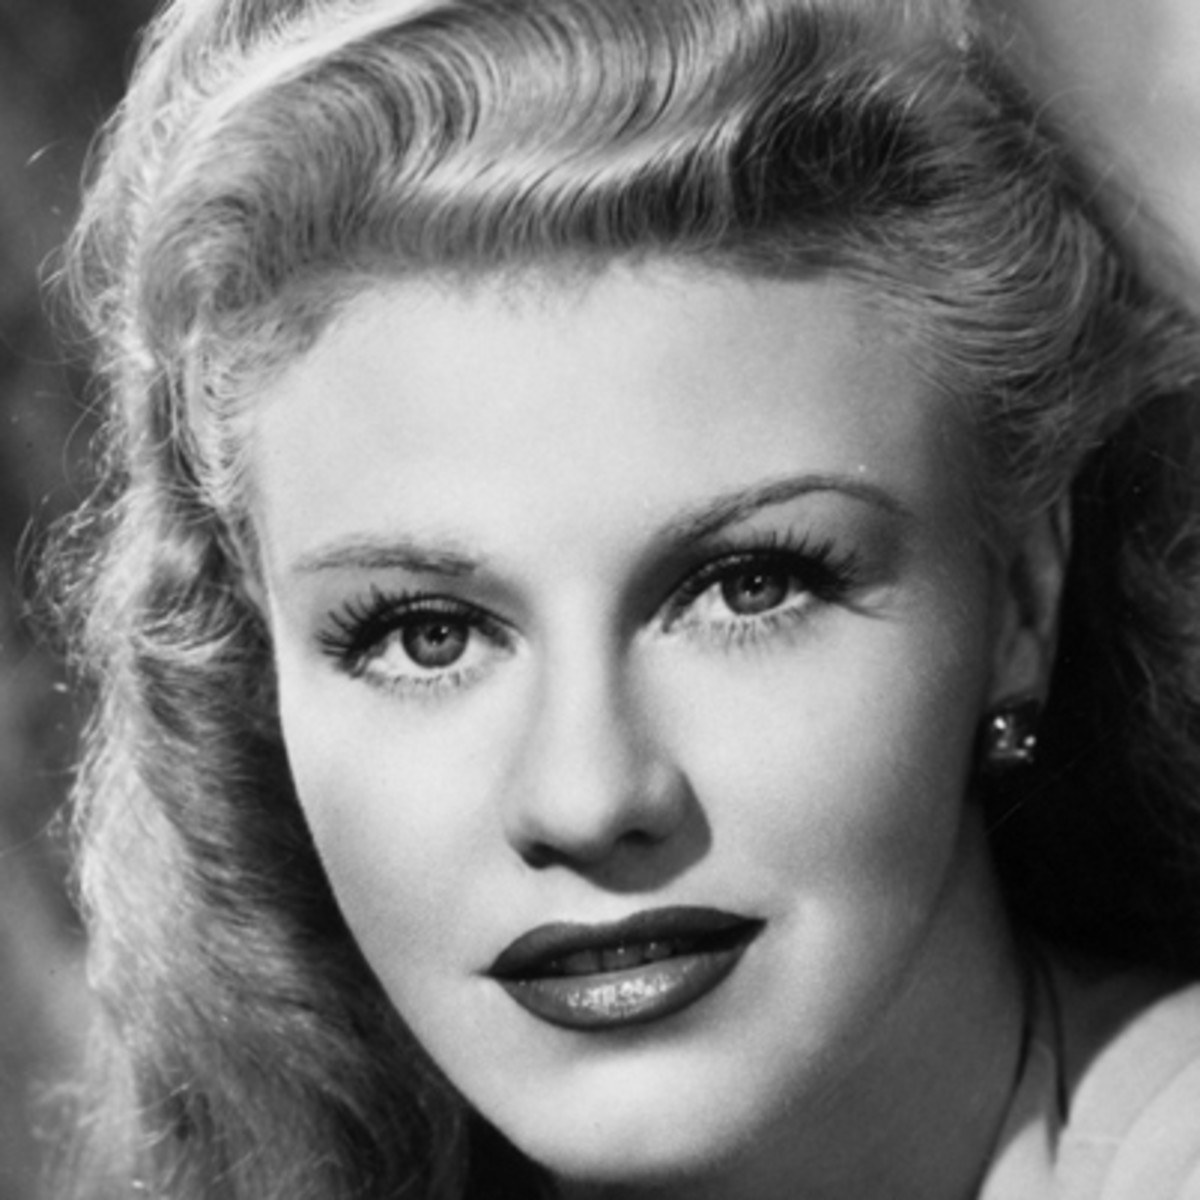 Forum on this topic: Rebecca Spence, ginger-rogers/